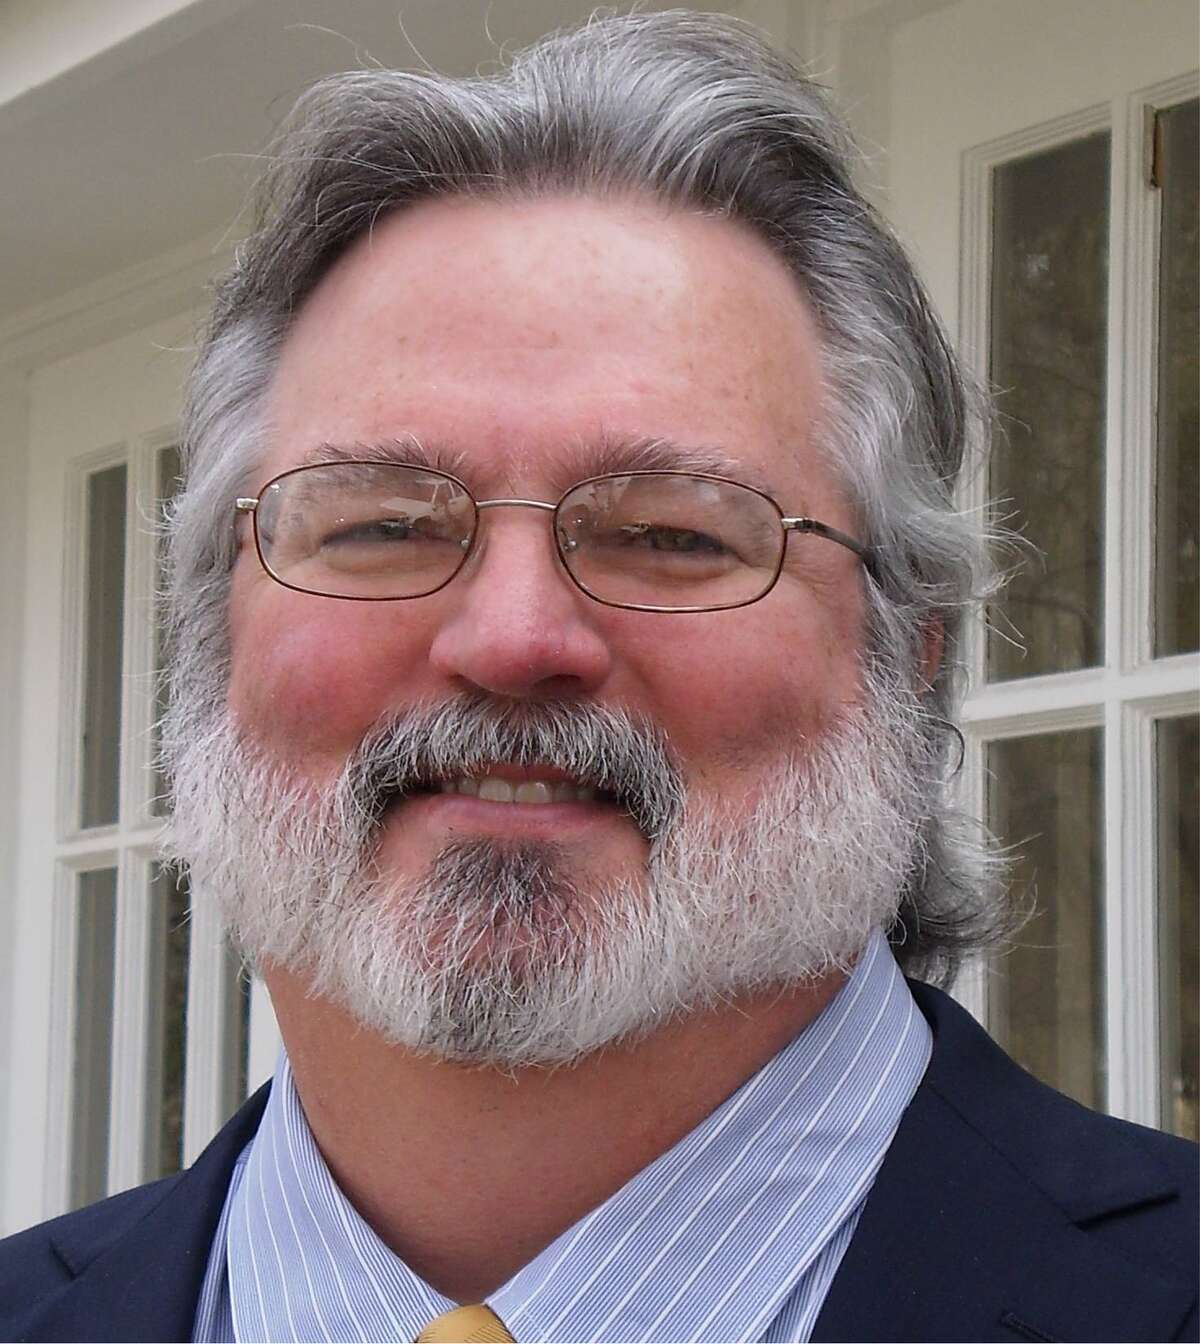 David Power is deputy director of the Austin-based Texas office of the advocacy group Public Citizen and is its lead solar and renewables program manager.